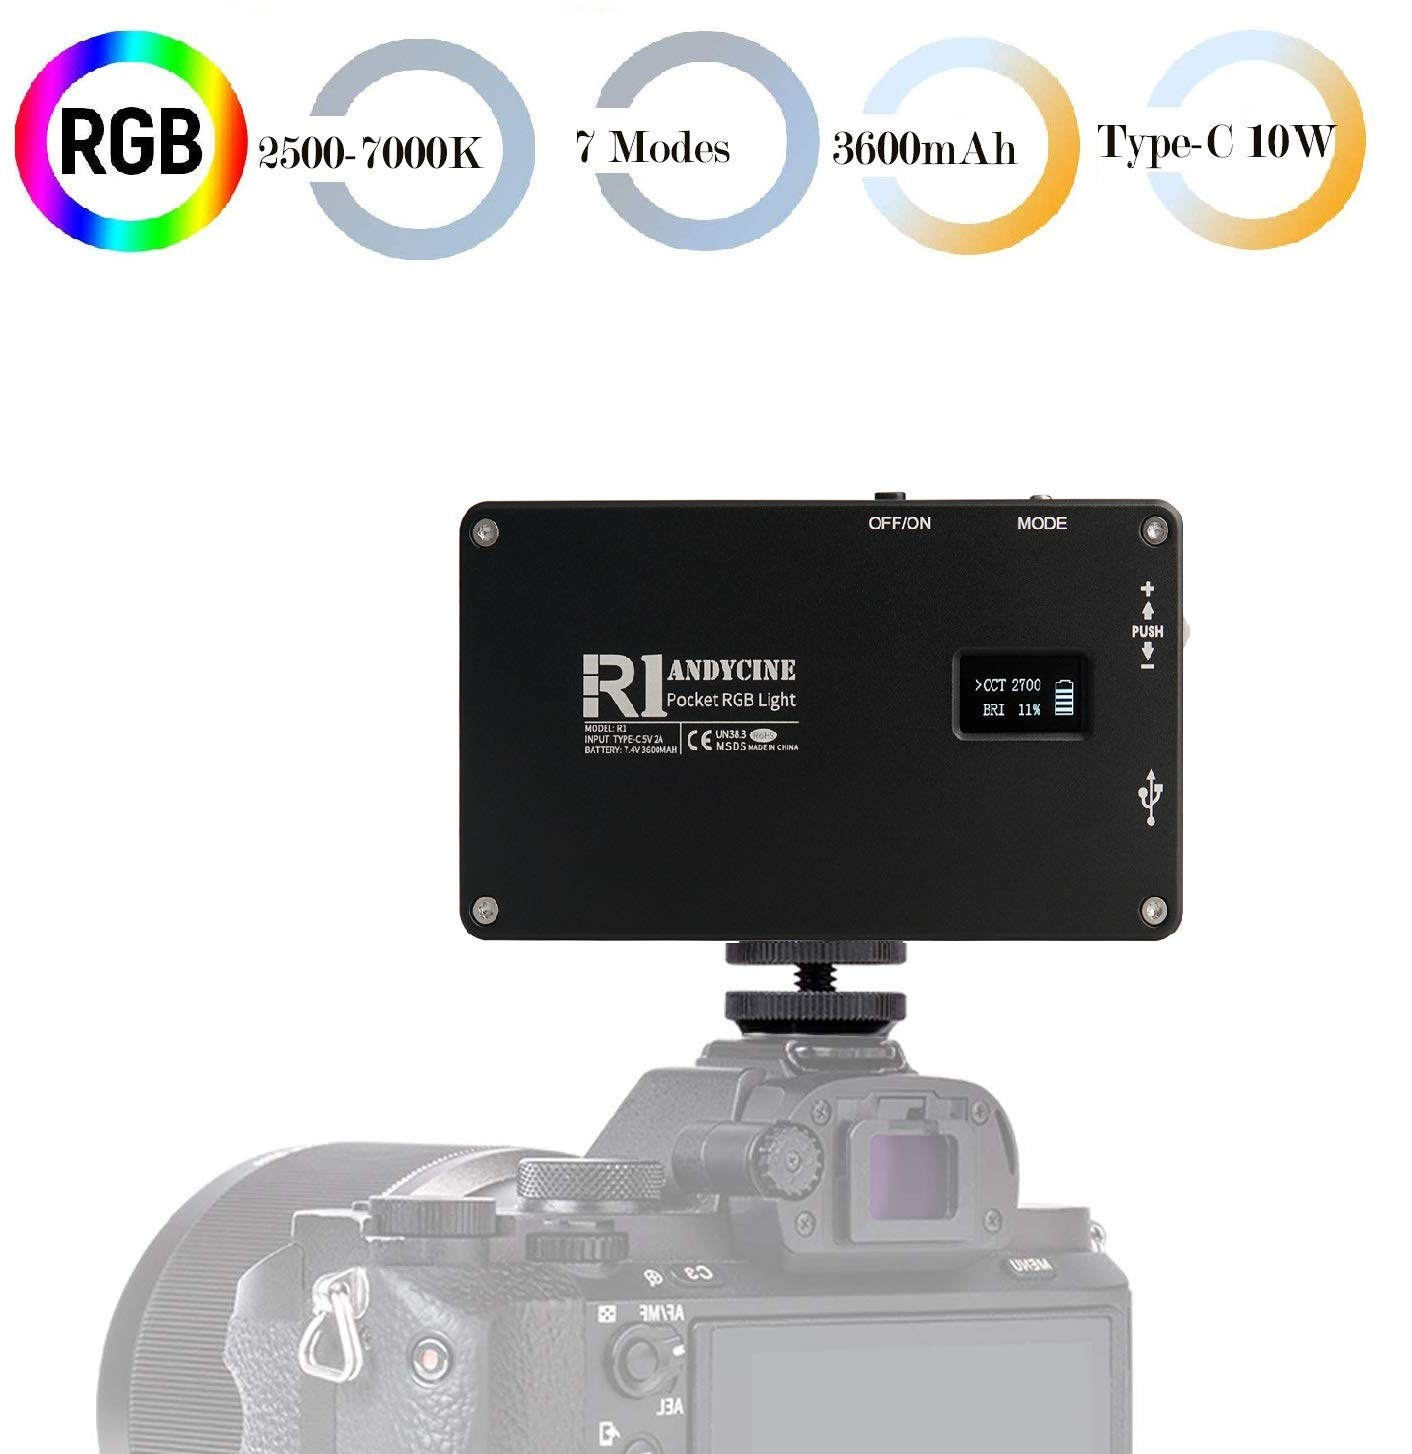 ANDYCINE R1 RGB Pocket Light, Mini Type-C 10W On-Camera Vlogger Video Light 2500-7000K 7 Applicable Situations 192 LEDs with 3600mAh Built in Battery